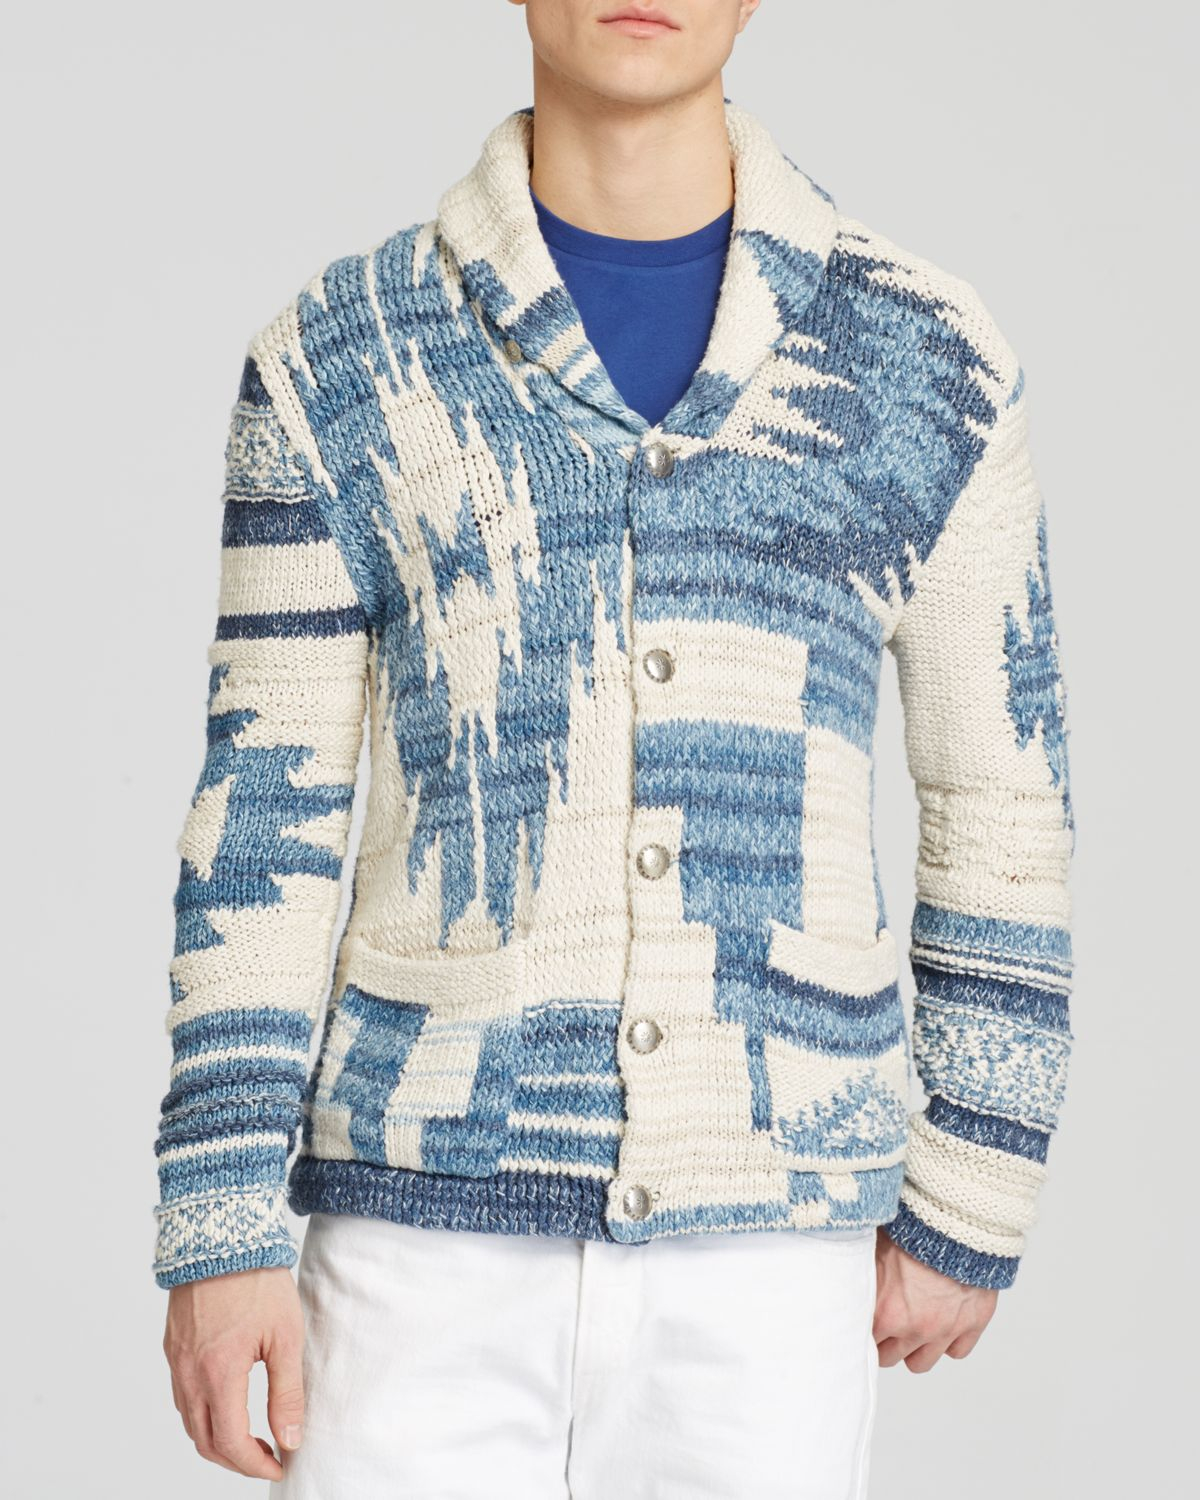 63850f54e inexpensive lyst ralph lauren polo southwestern shawl cardigan in blue for  men 719a0 08847